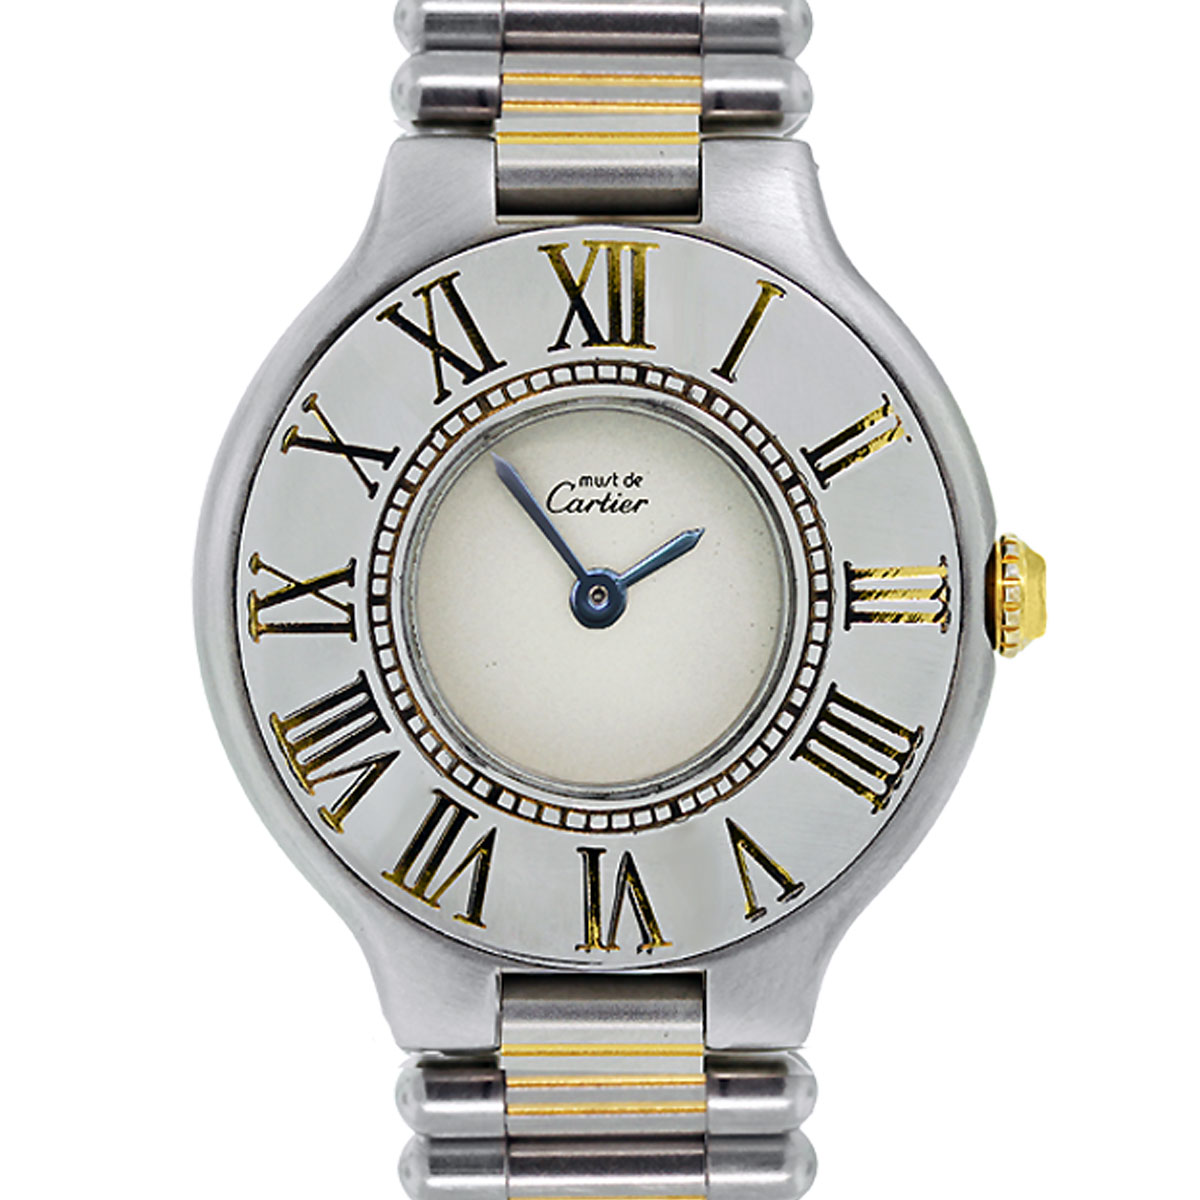 Cartier is known for its jewelry and wristwatches. Cartier has a long history of sales to royalty. King Edward VII of England referred to Cartier as